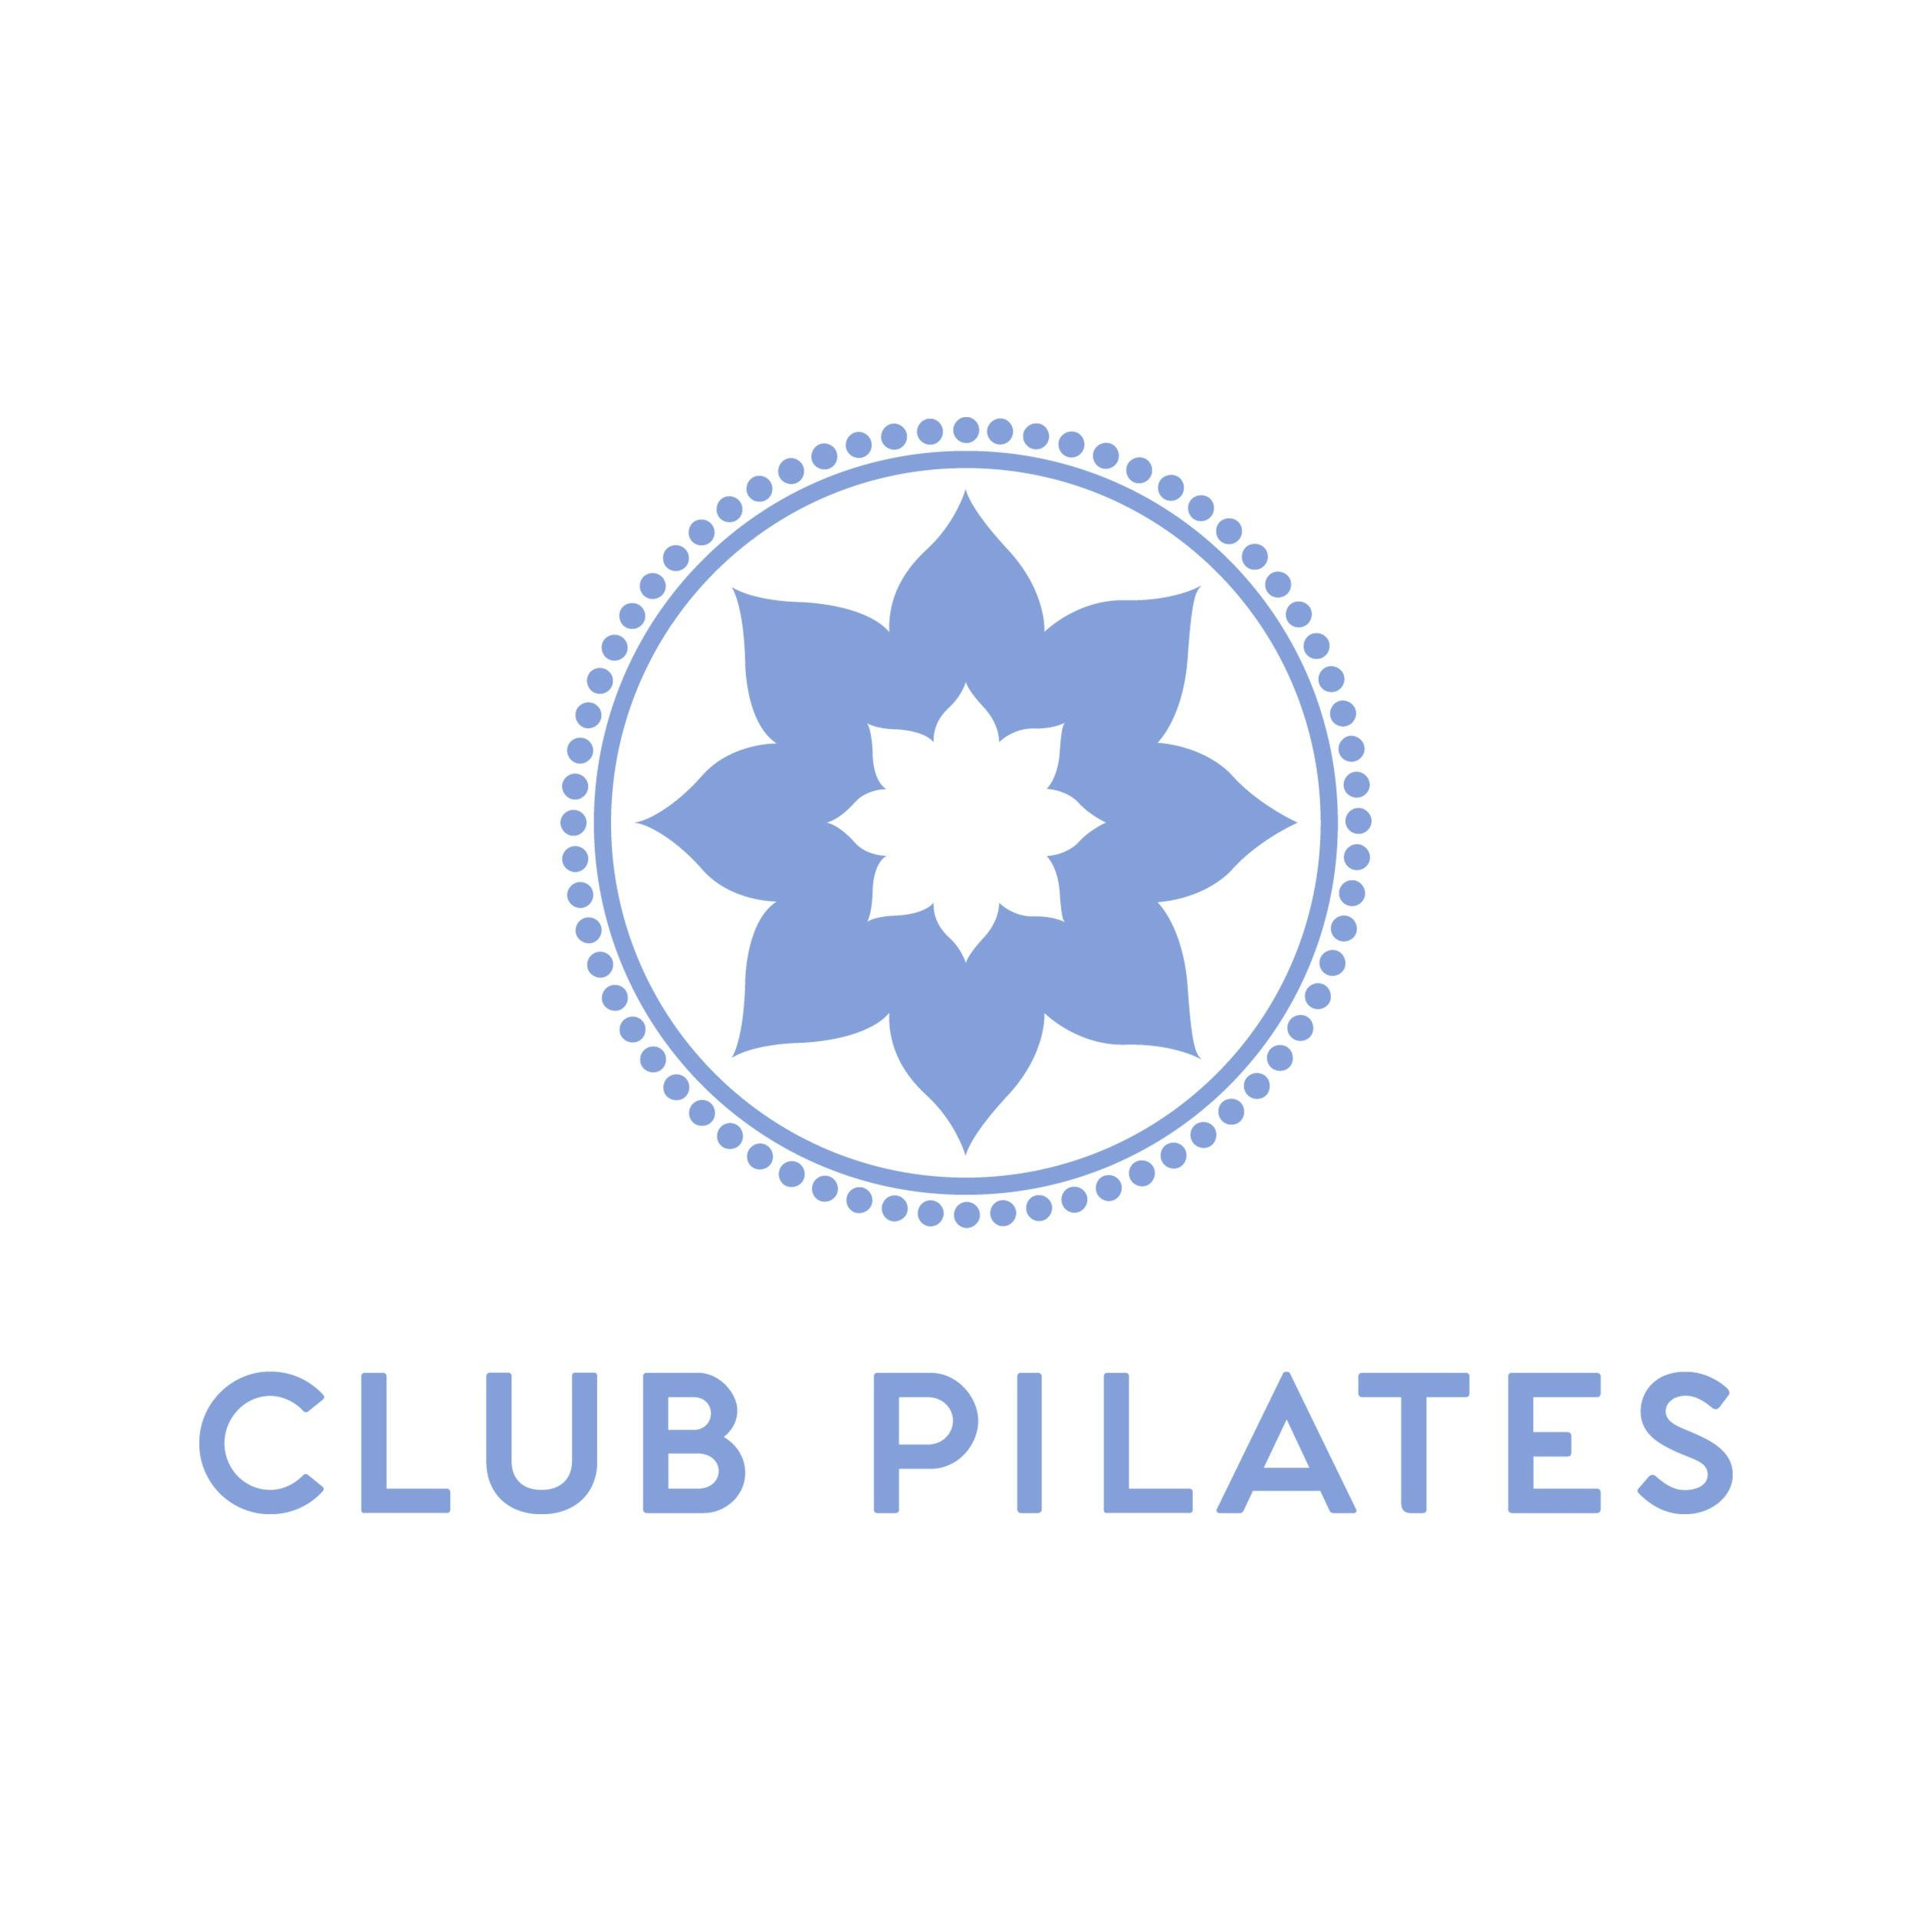 Club Pilates image 7